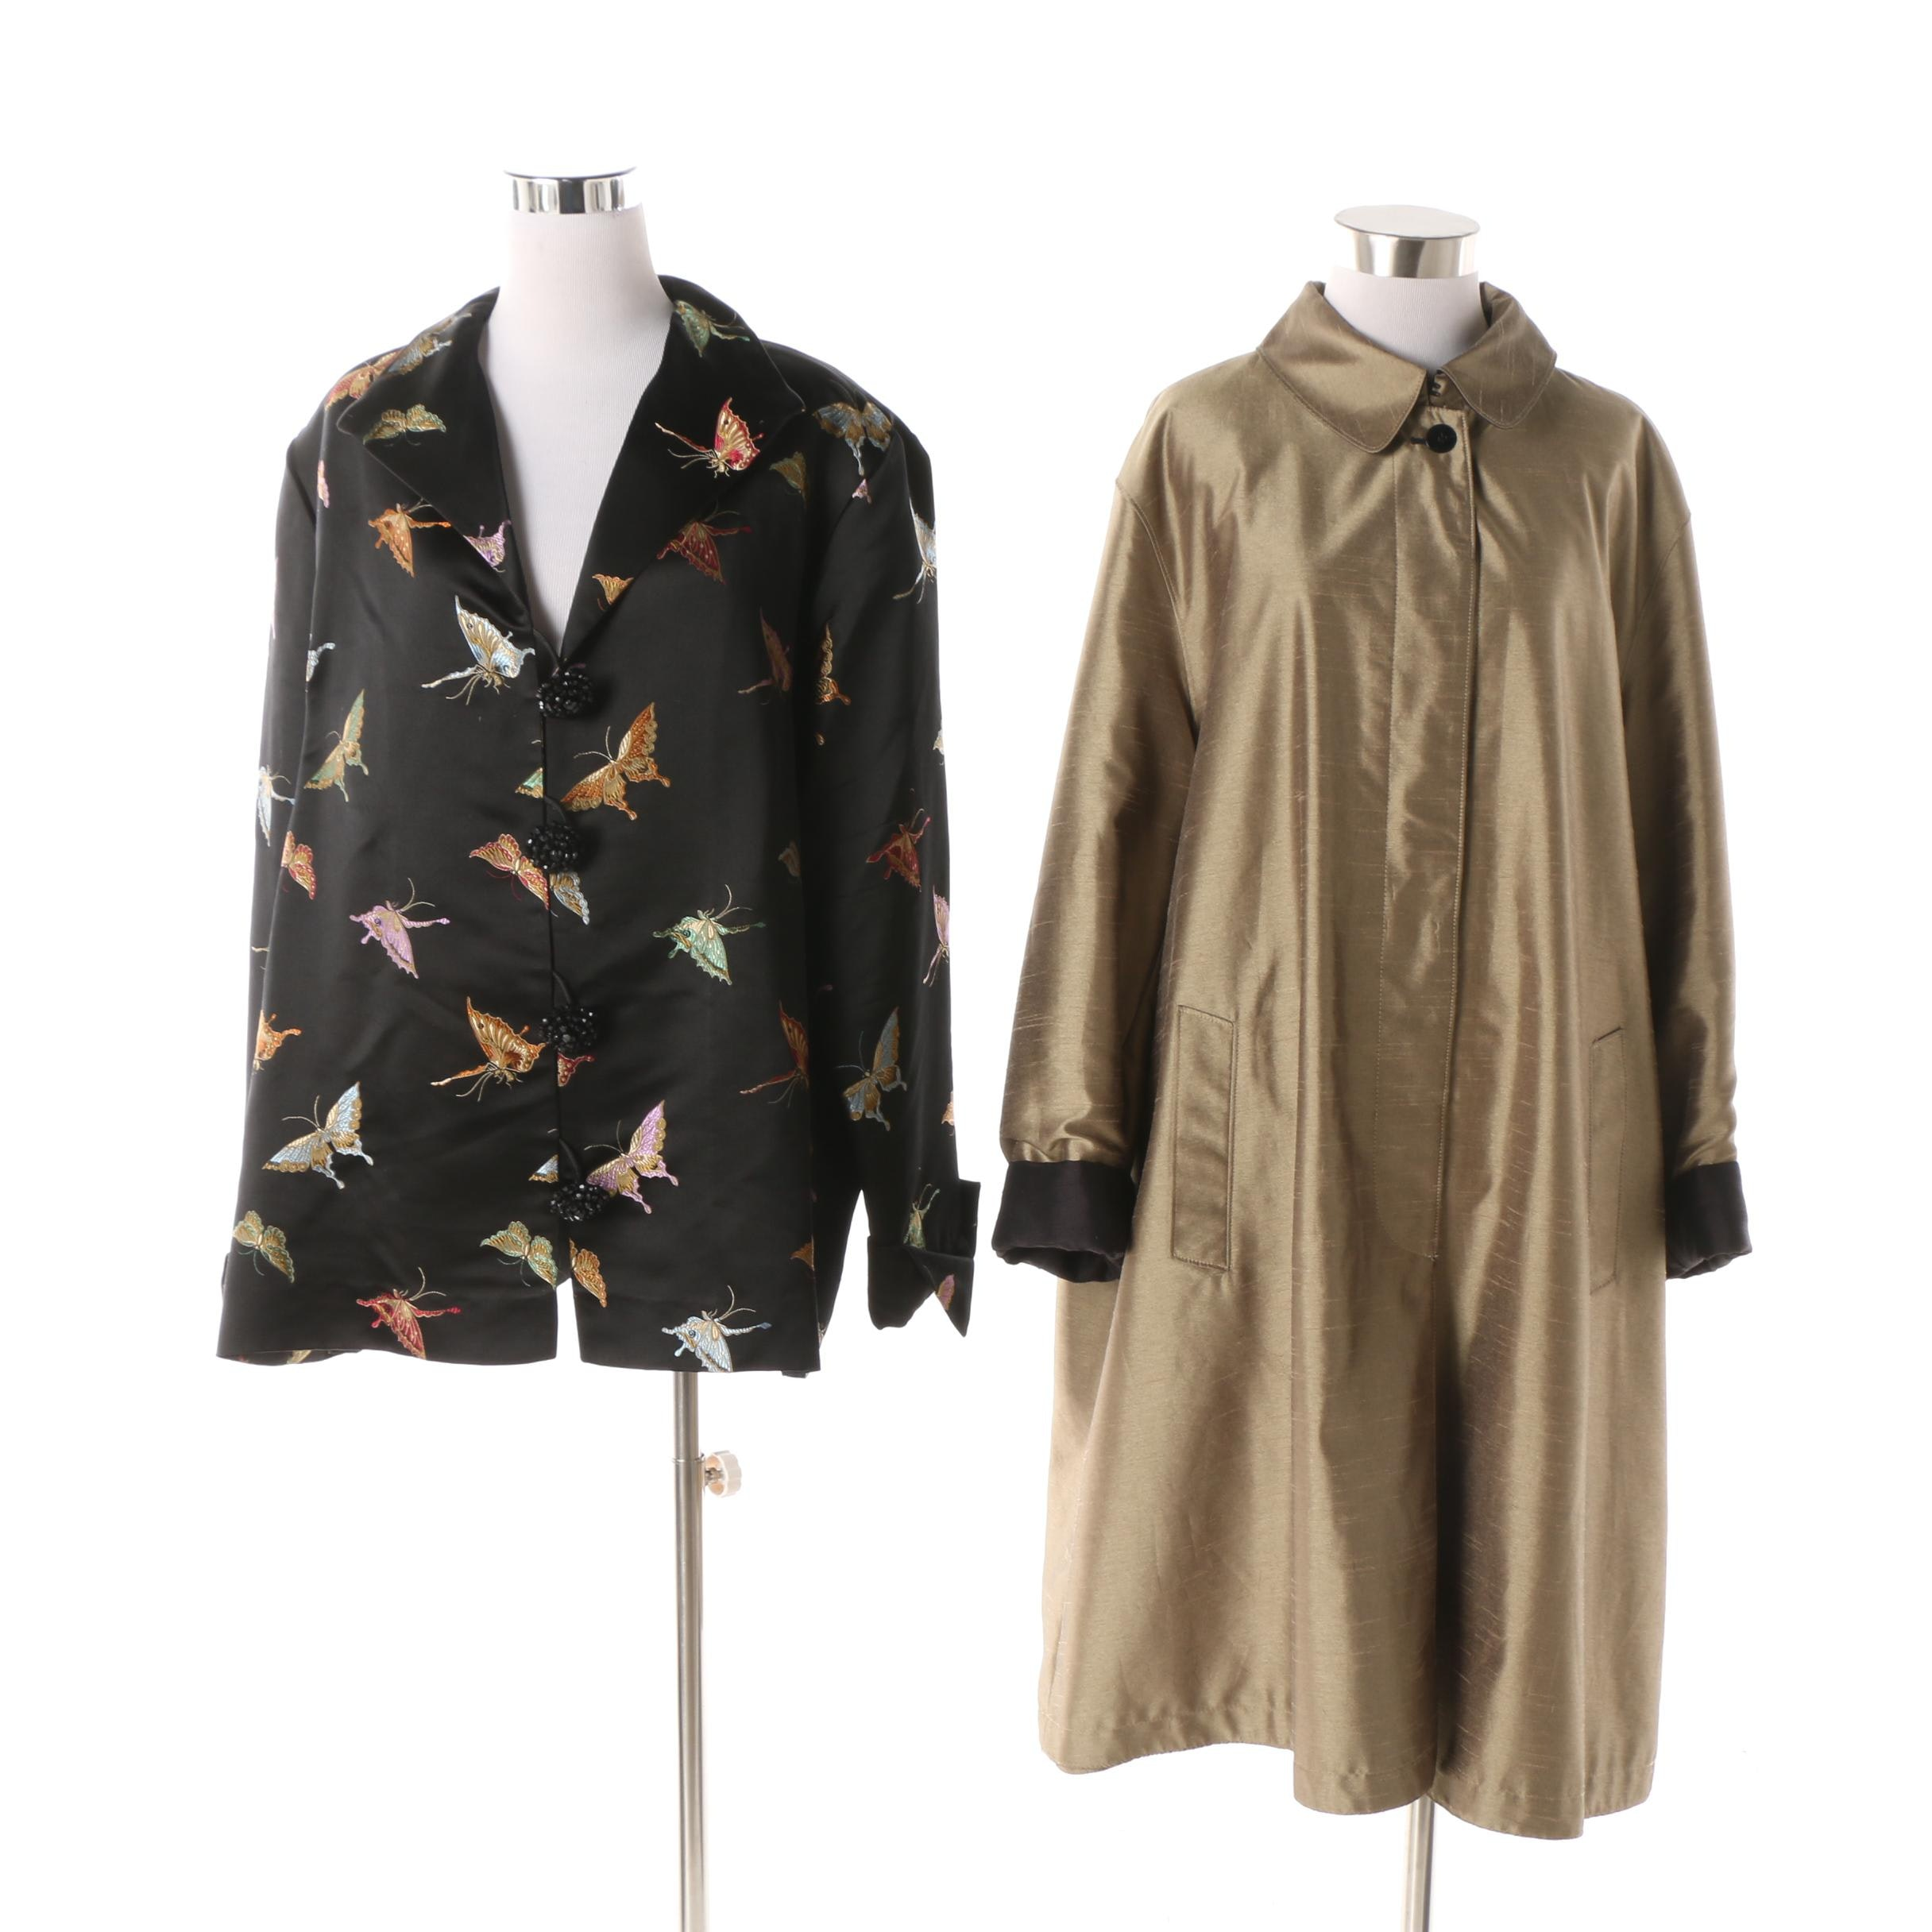 Avenue Fashions Butterfly Embroidered Jacket and Unlabeled Reversible Coat